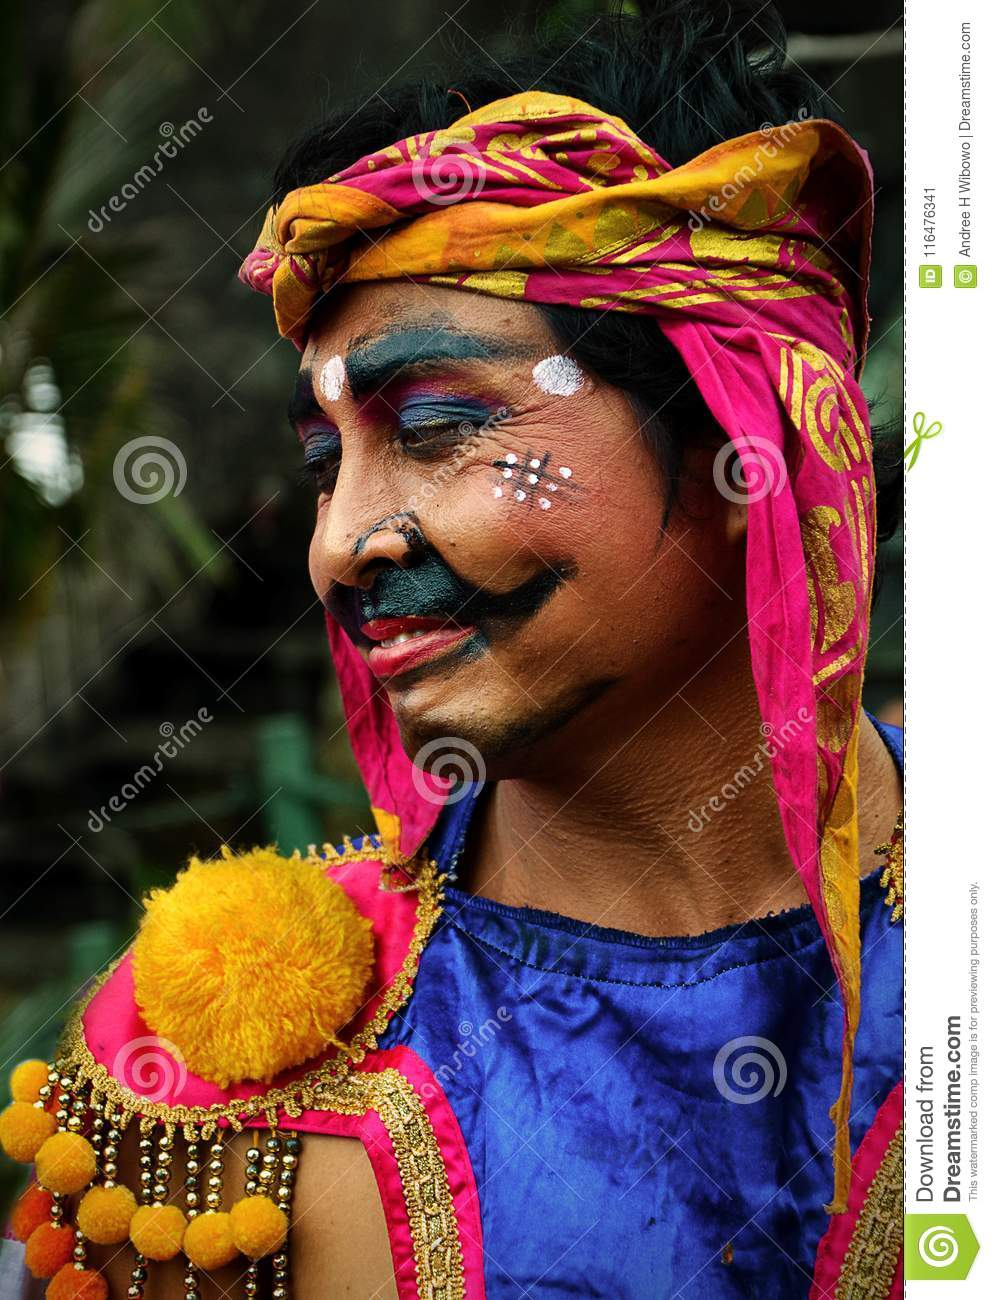 Balinese Guard with Painted Face and in Traditional Costume